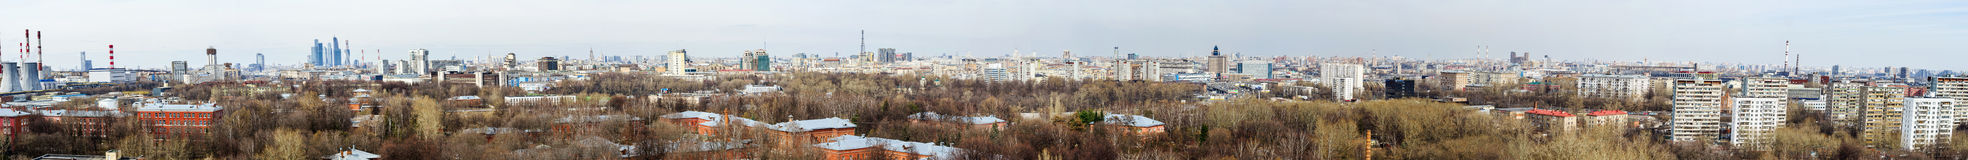 Moscow aerial panorama at day time Royalty Free Stock Photography